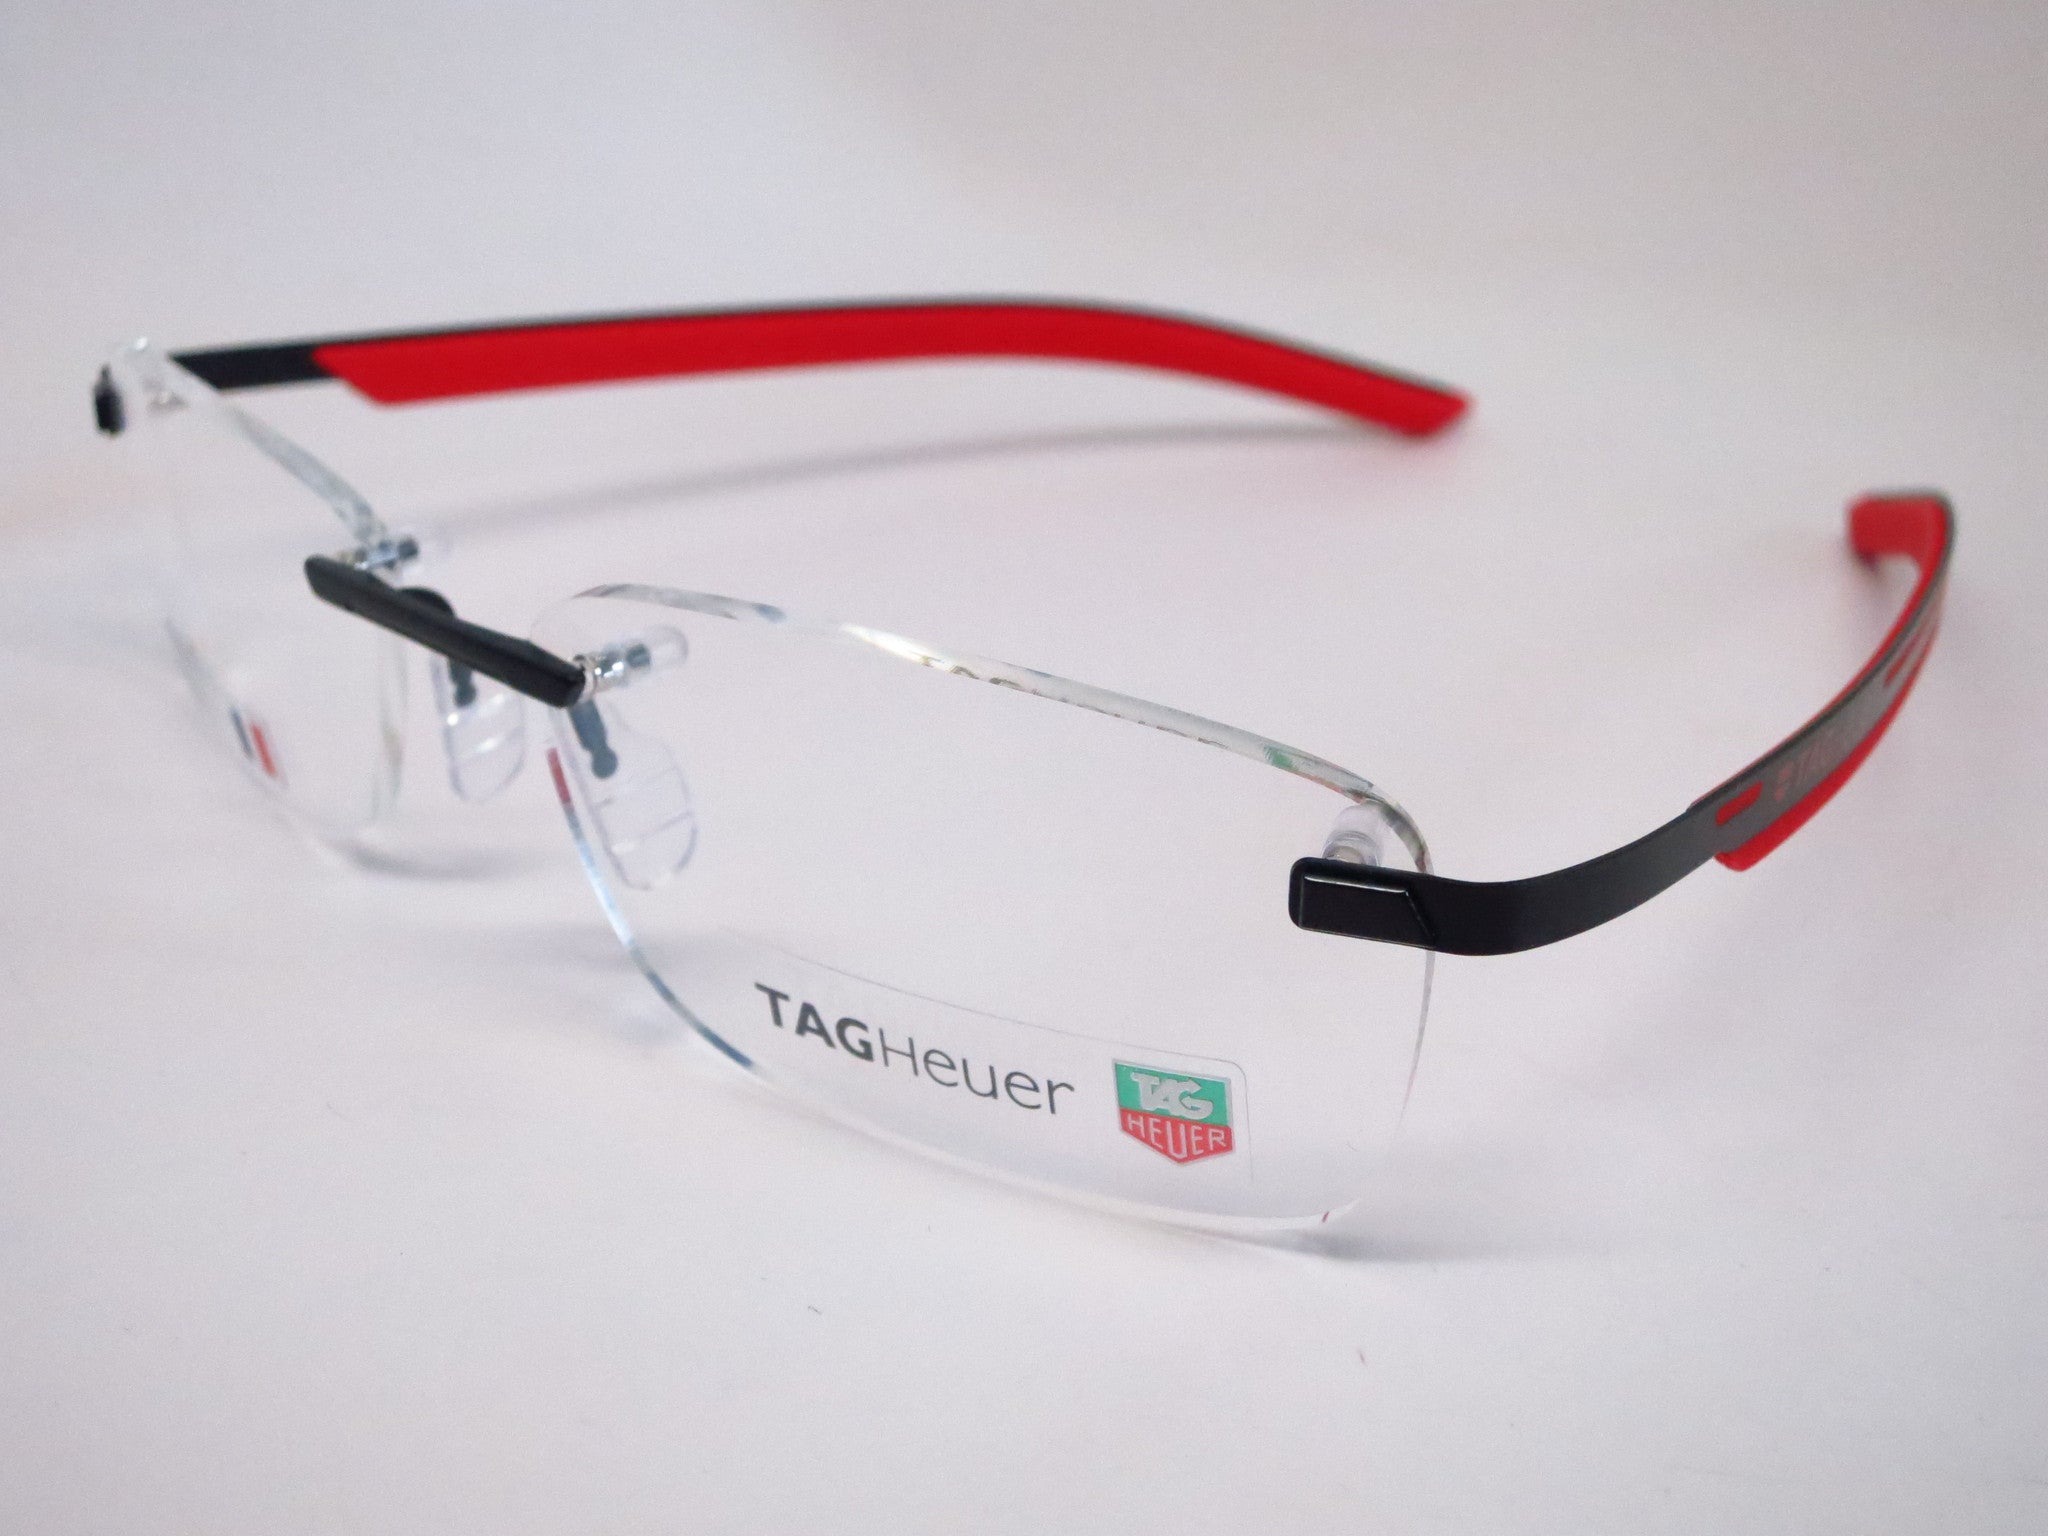 03cb10b68e Tag Heuer TH 3843 002 Red   Black Line Rimless Eyeglasses - Eye Heart  Shades ...